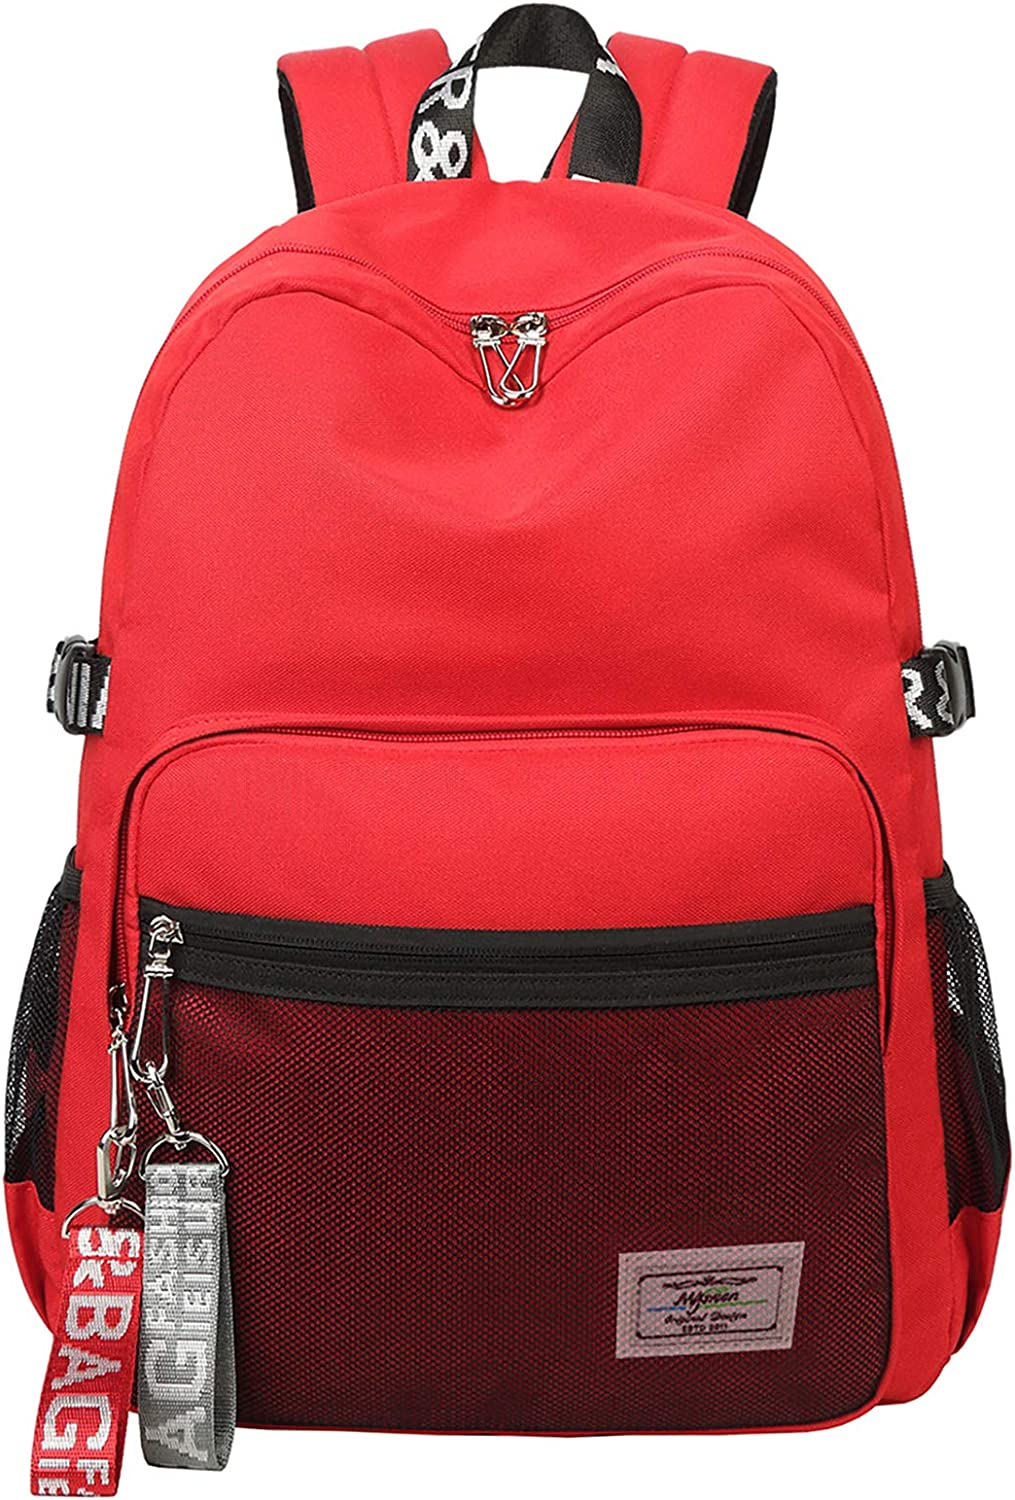 El-fmly Cute Backpack for Teen Girls Lightweight Casual Fashion Shoulder School Bookbag Travel Outdoor Laptop Daypack Red Bag